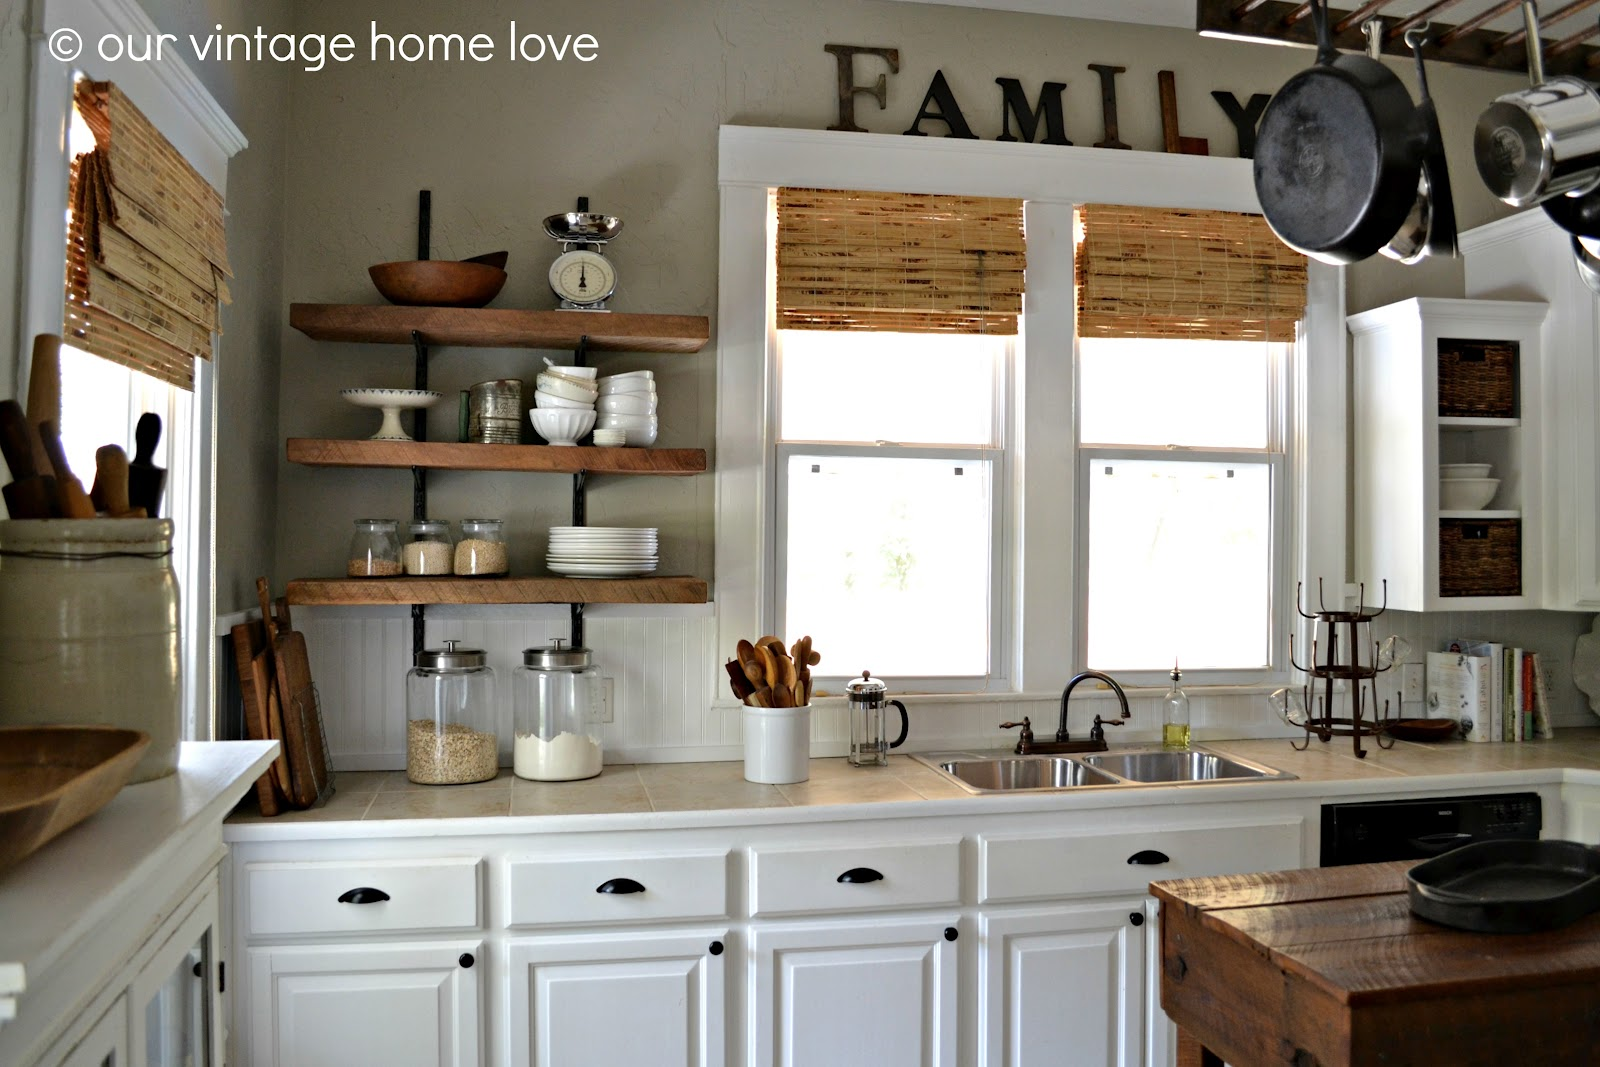 kitchen wall shelving mid century table vintage home love reclaimed wood reveal